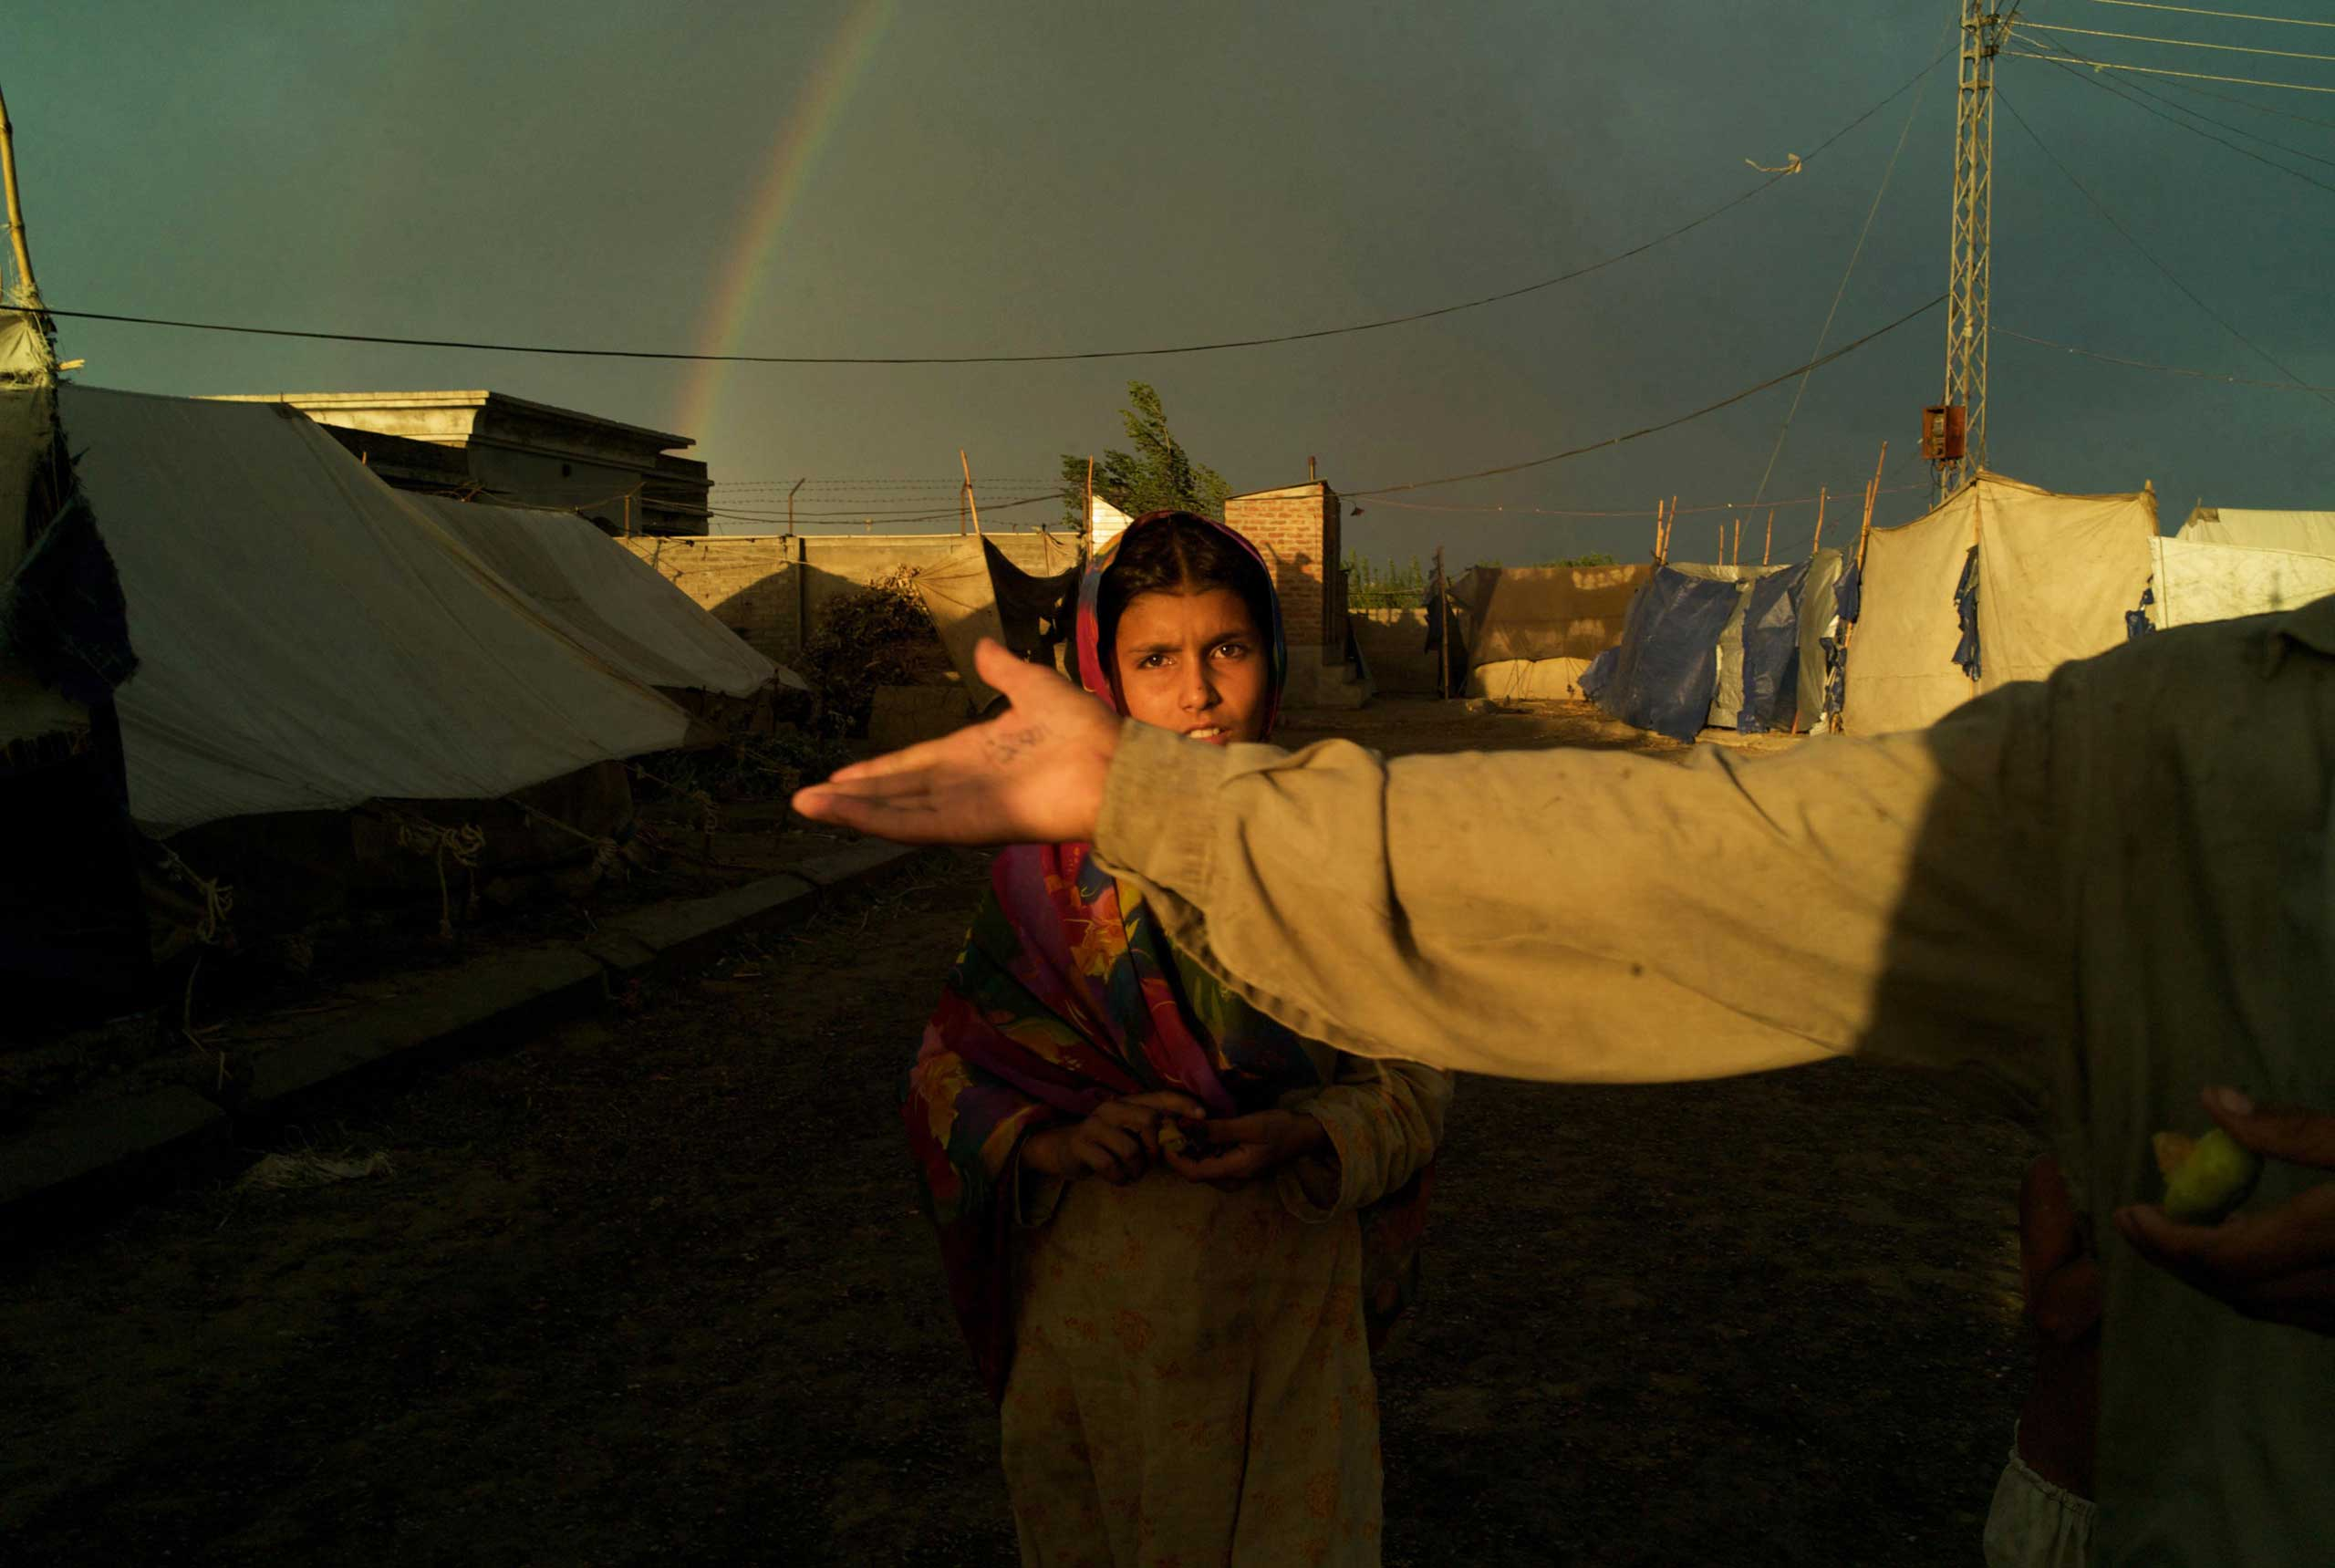 CHARSADDA, PAKISTAN- JUNE 2009                               Under the arc of a rainbow, a girl makes her way through a tented camp in Charsadda located in the grounds of a technical college. Home to nearly 25,000 refugees from Bajaur, the  camp was one of the first to be established as conflict in Pakistan's tribal areas began nearly a year ago.